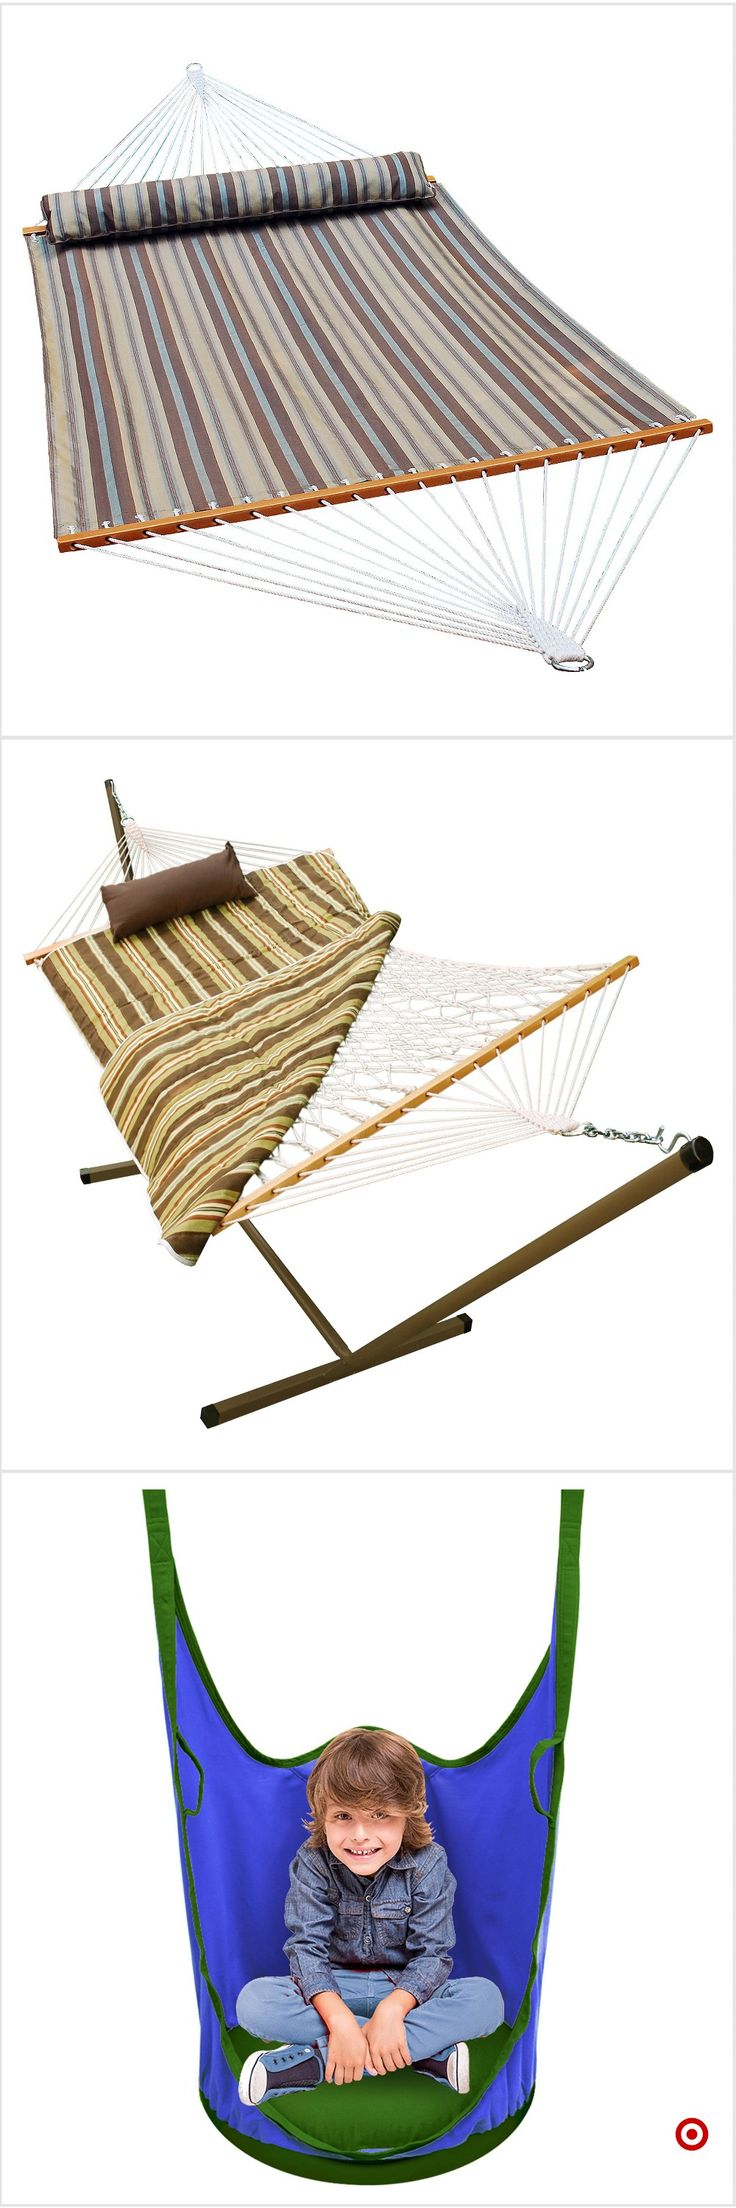 Shop Target for hammock accessory you will love at great low prices. Free shipping on orders of $35+ or free same-day pick-up in store.